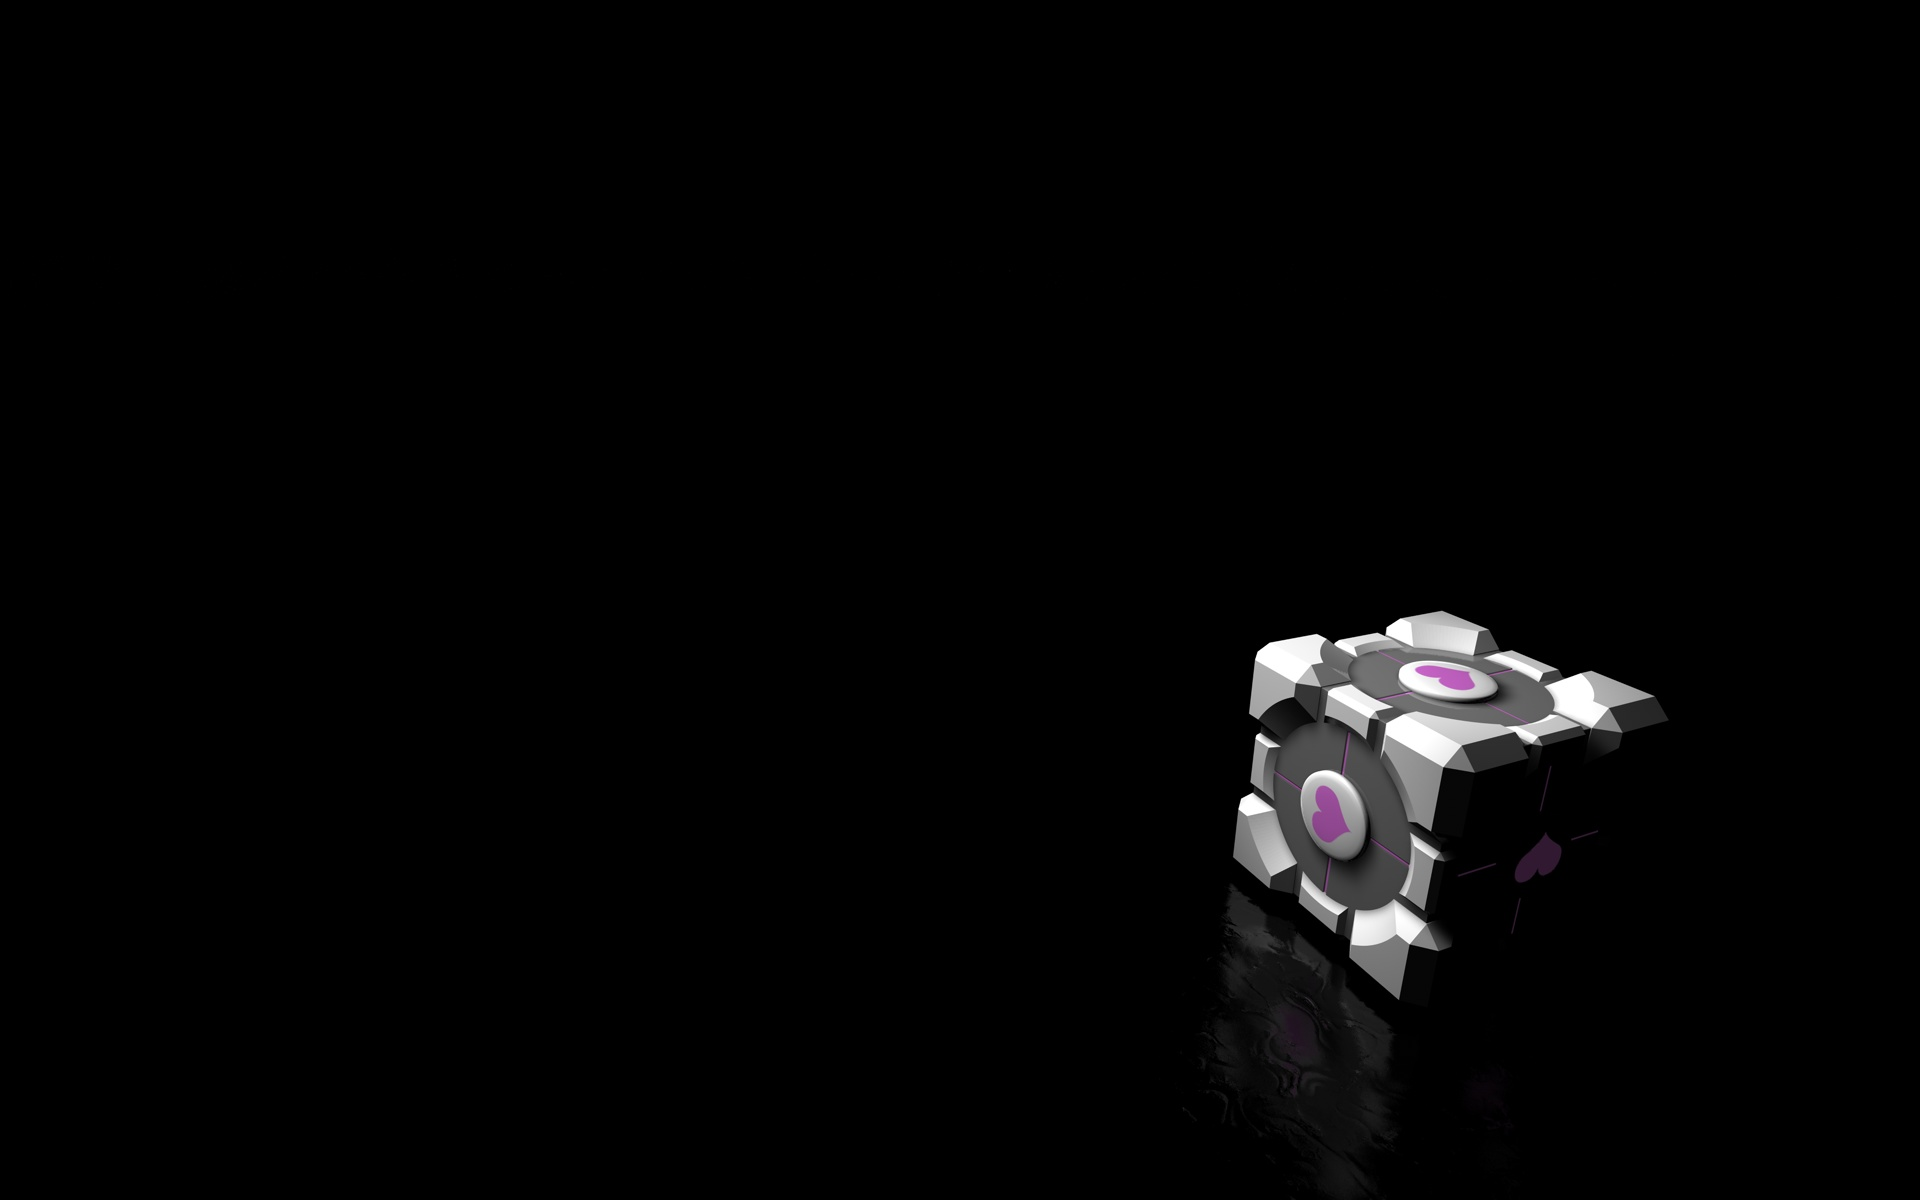 3D Cube Wallpapers 1920x1200